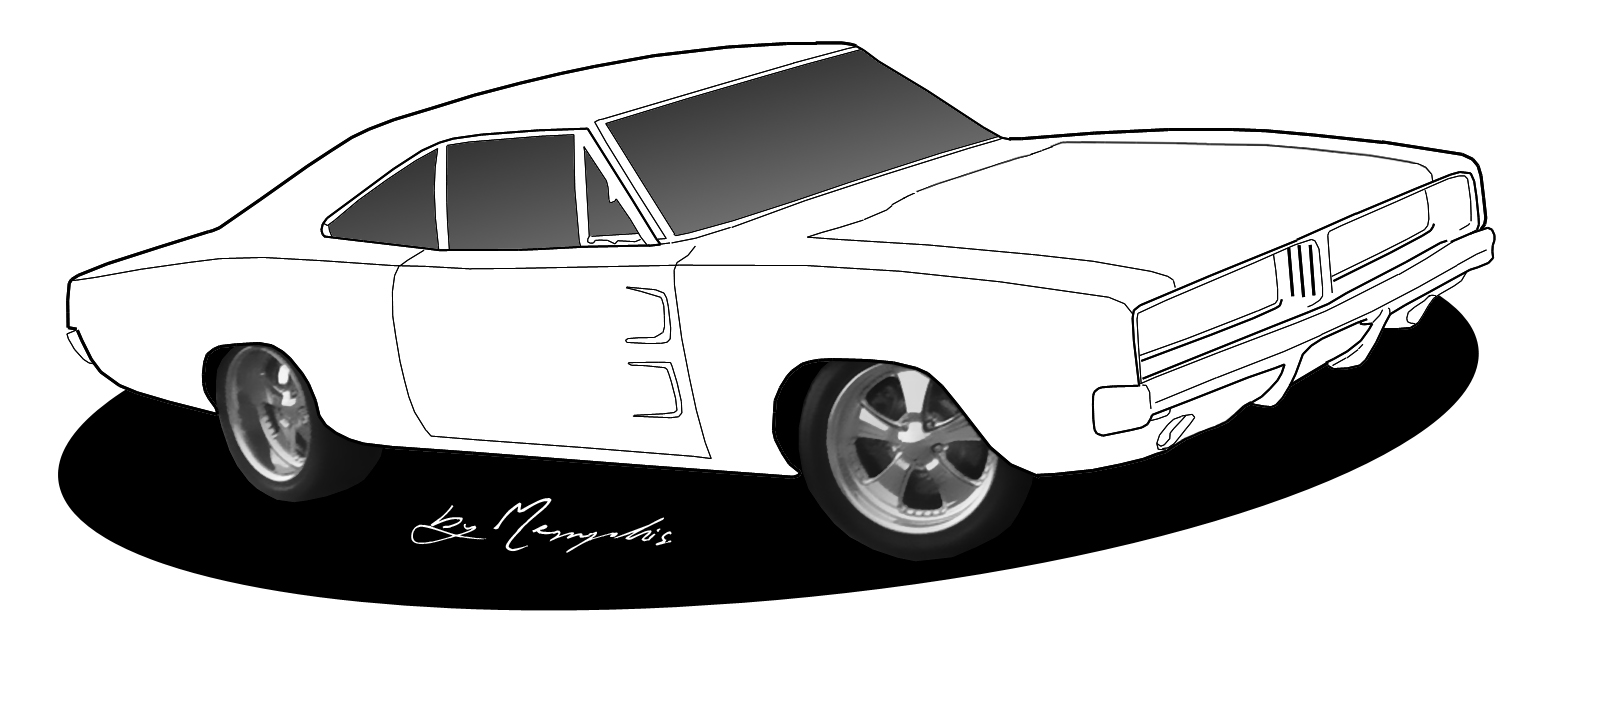 car picture to color indy car coloring pages coloring home to car picture color